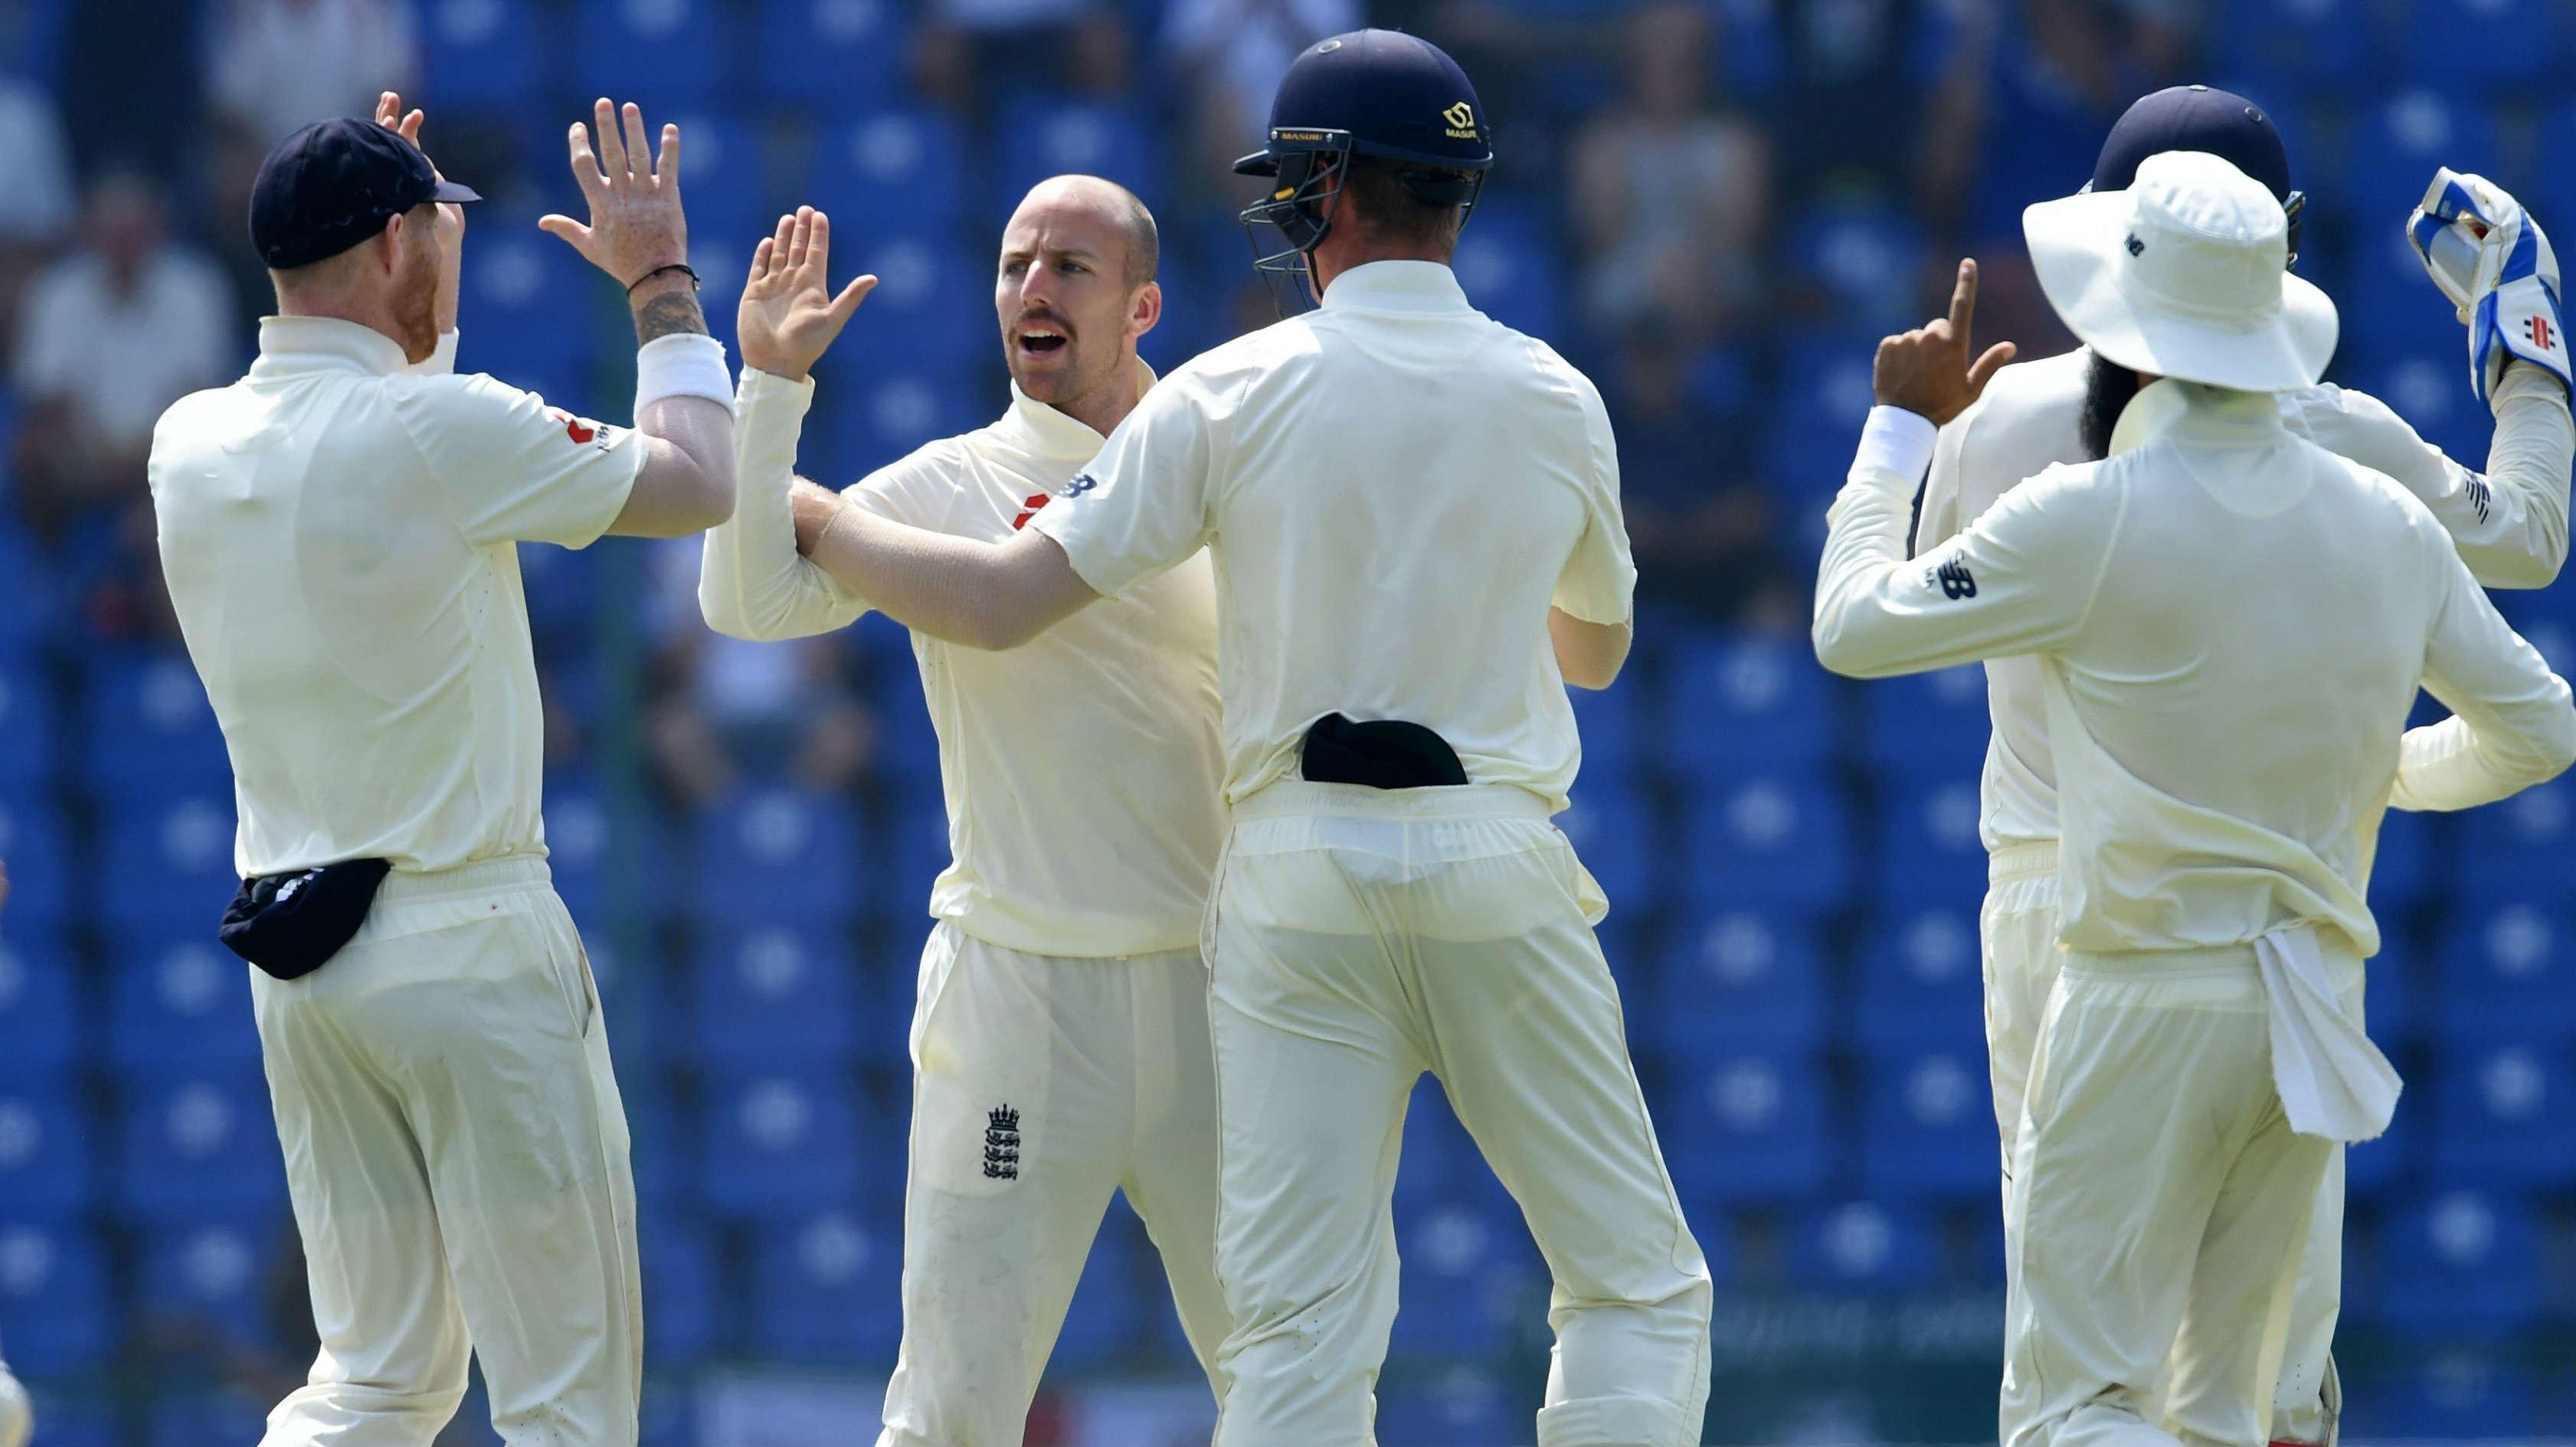 England on the brink of tense, series-clinching victory